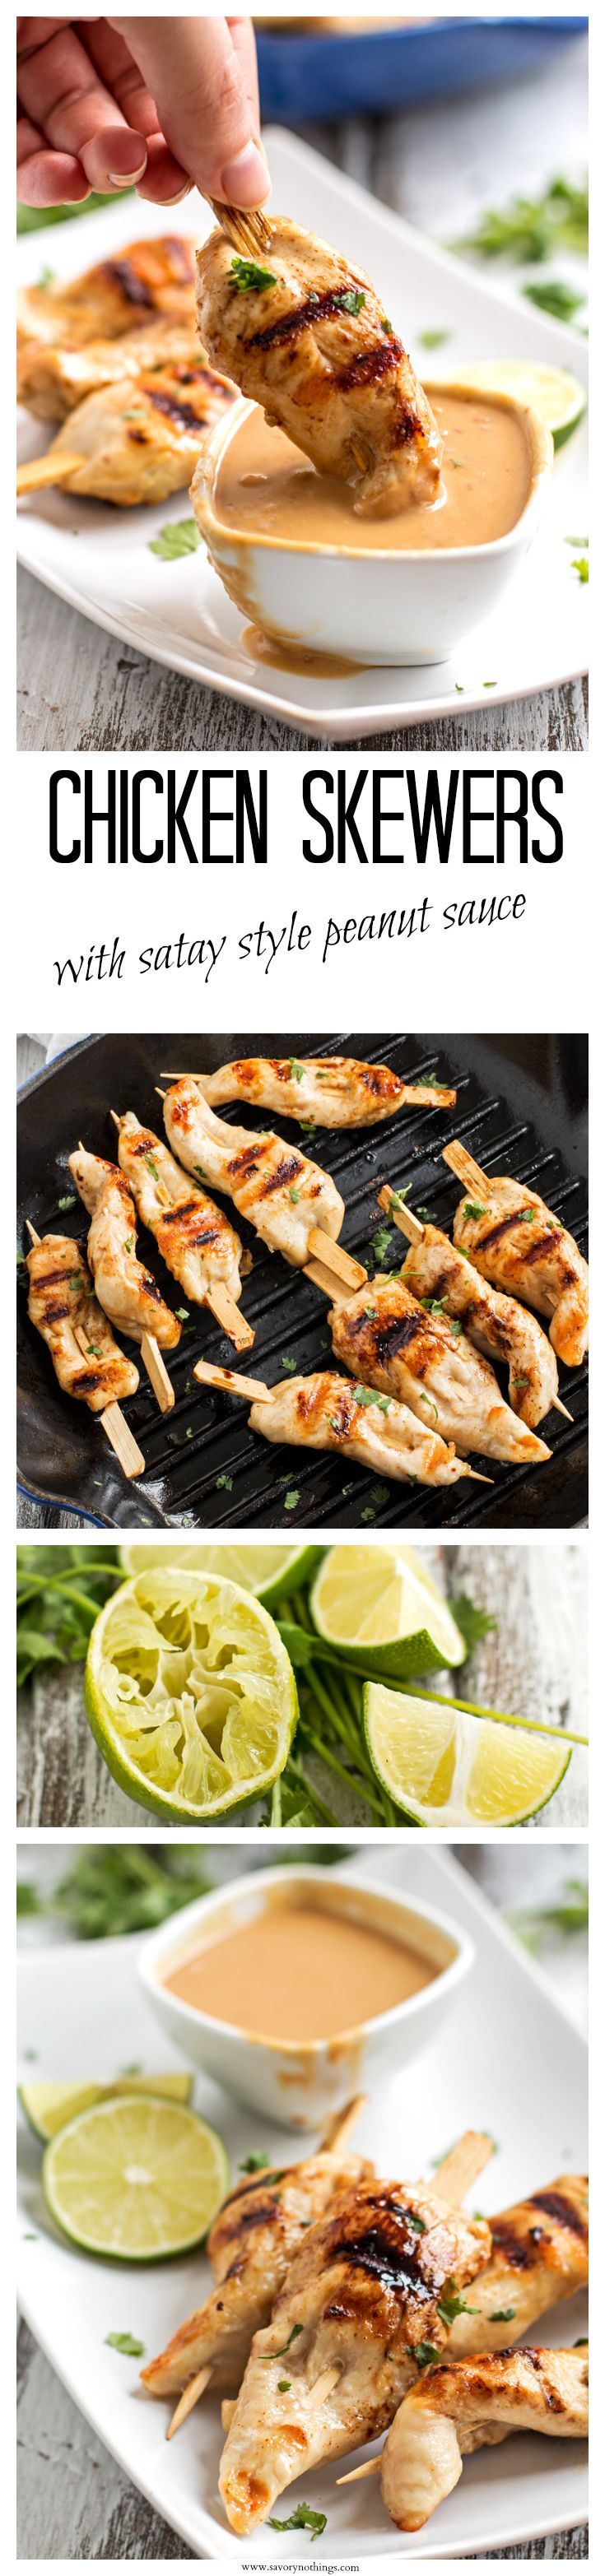 Chicken Skewers with Satay Style Peanut Sauce - These easy grilled skewers are absolutely perfect as a game day snack! Everyone's favorite appetizer!